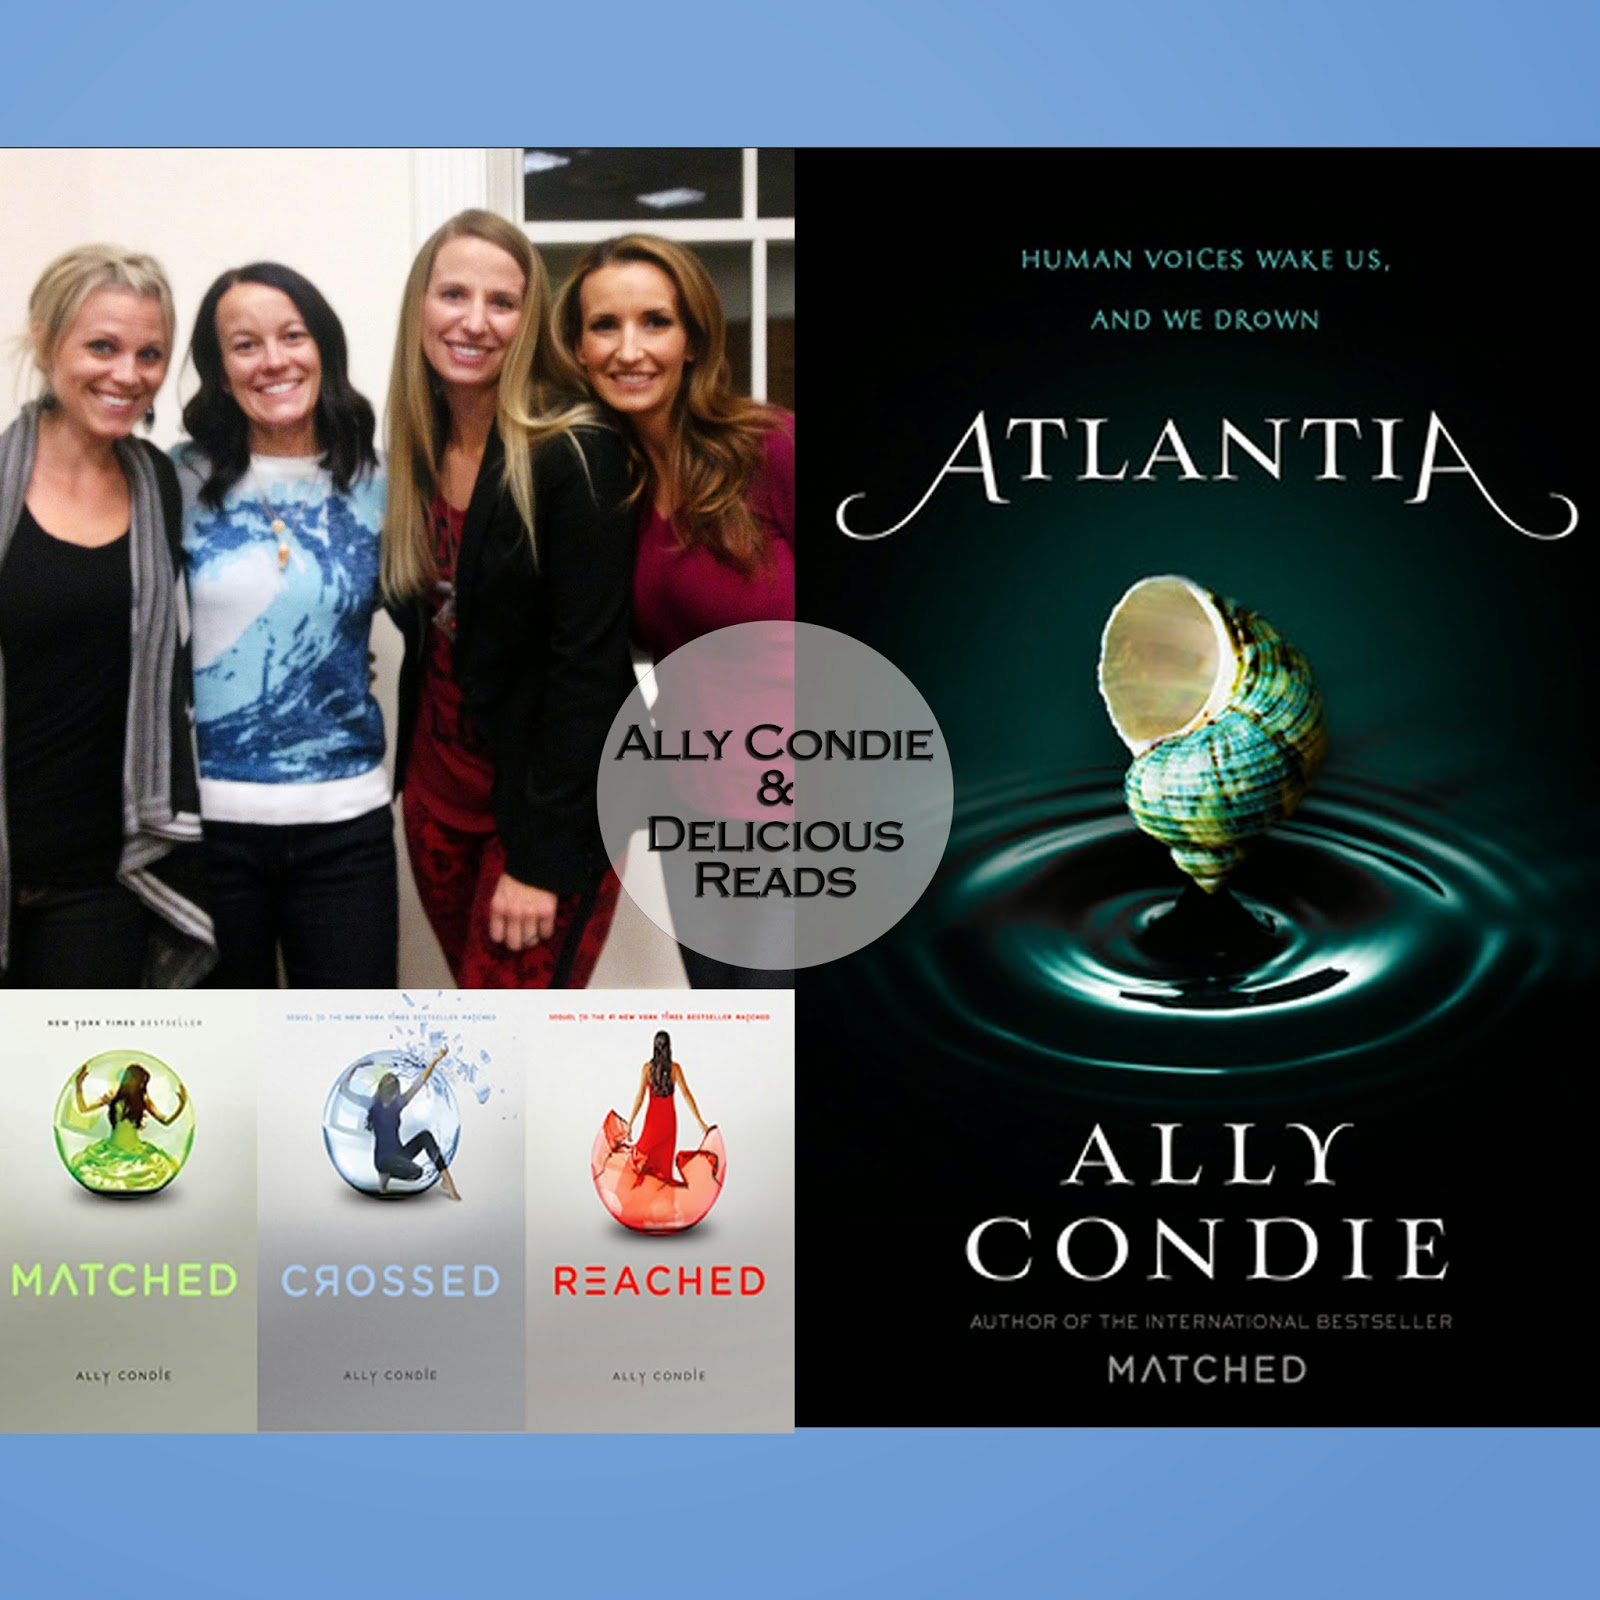 Ally Condie and three members of Delicious Reads book club